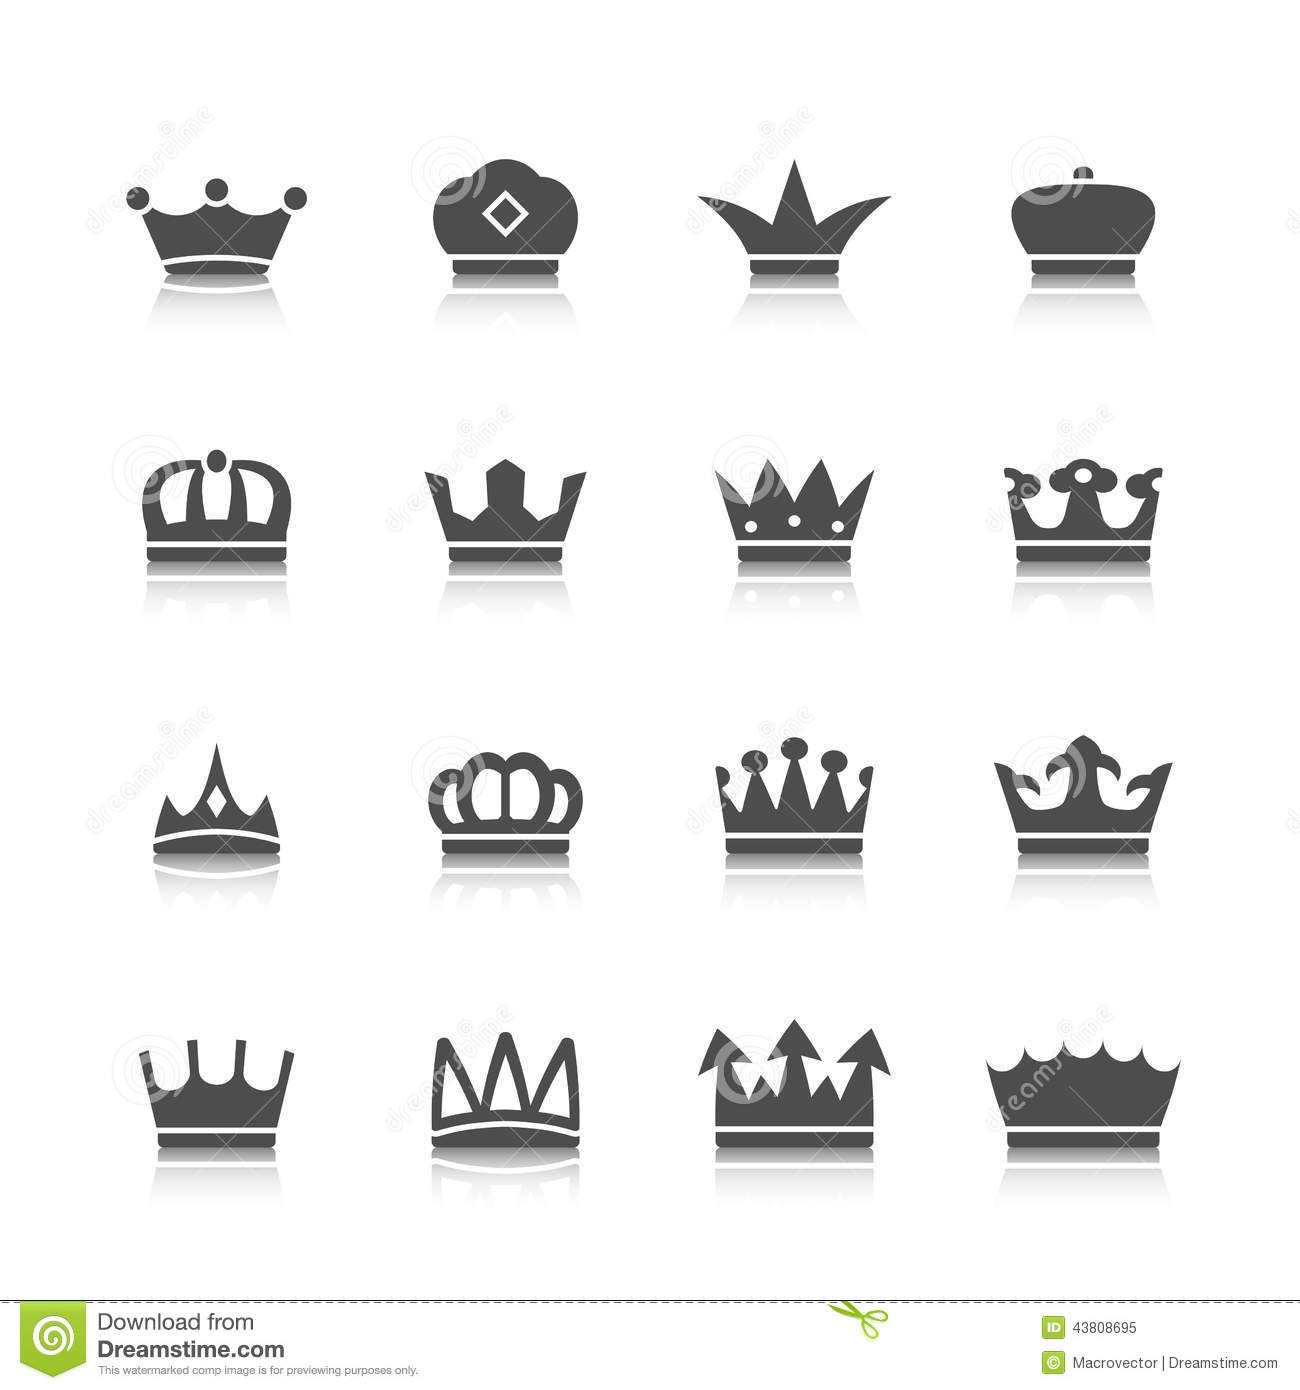 Decorative prince princess king type crowns tattoo authority and ...